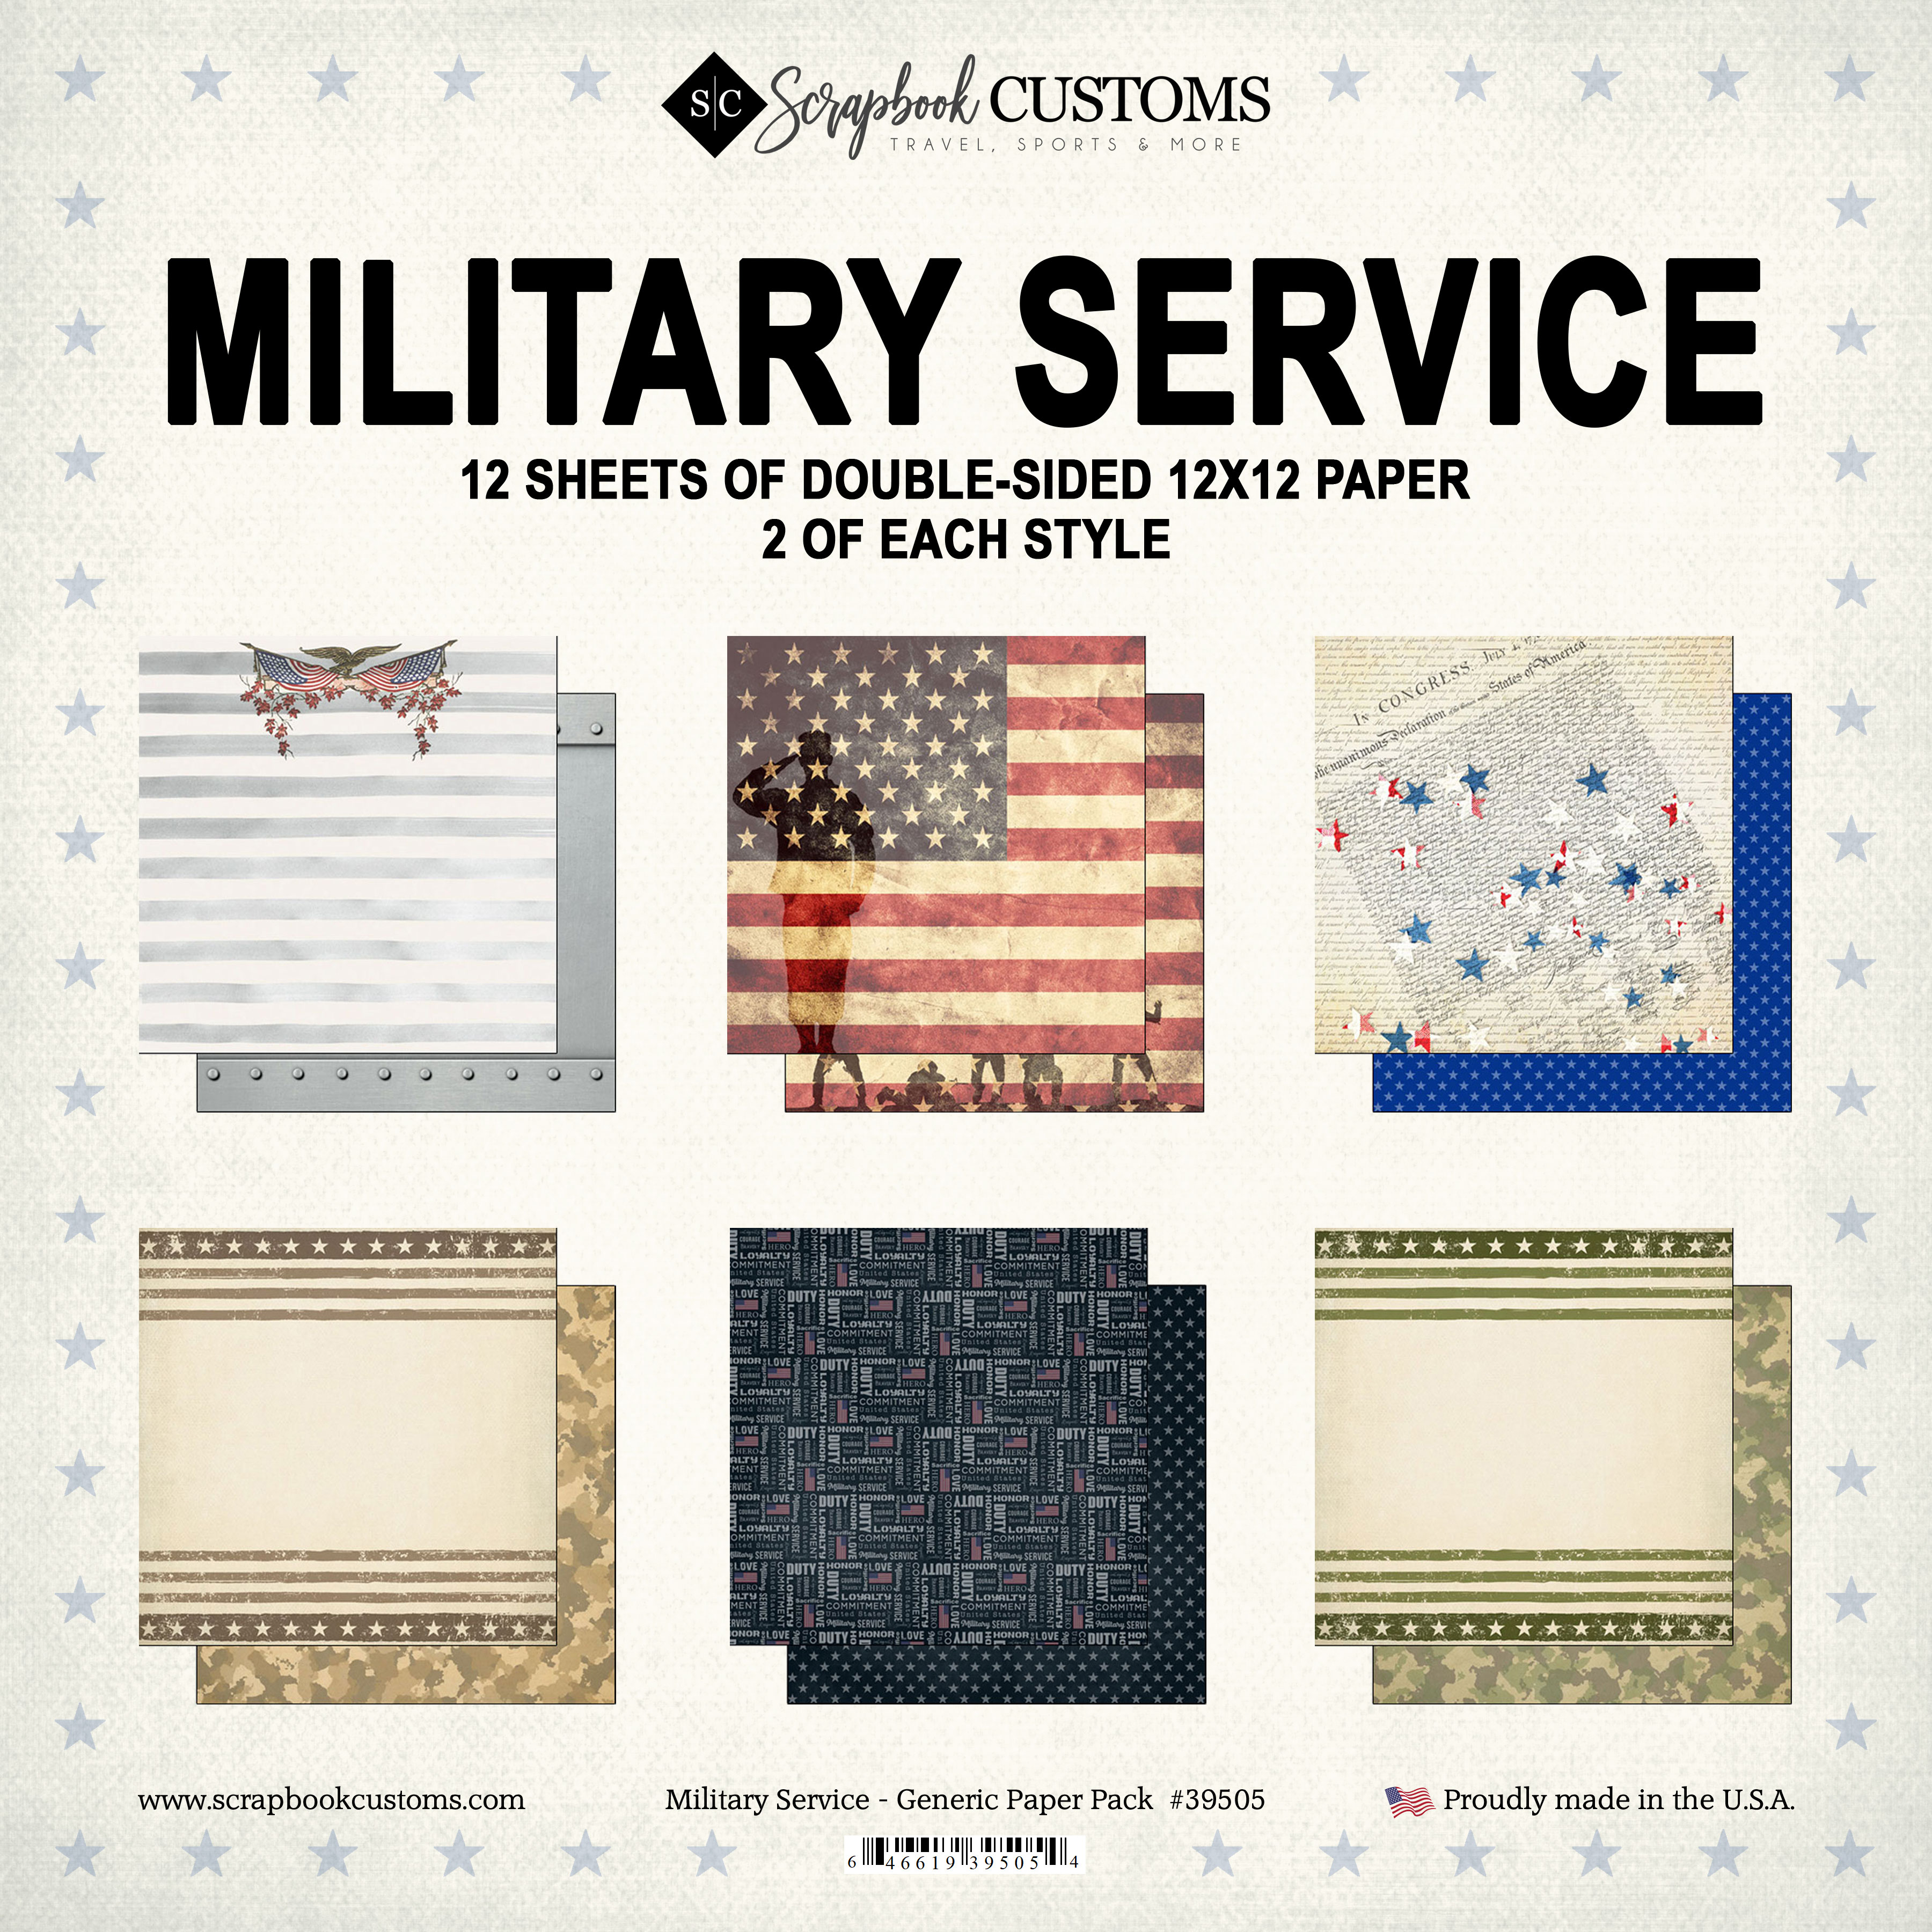 Military Service - Generic Paper Pack